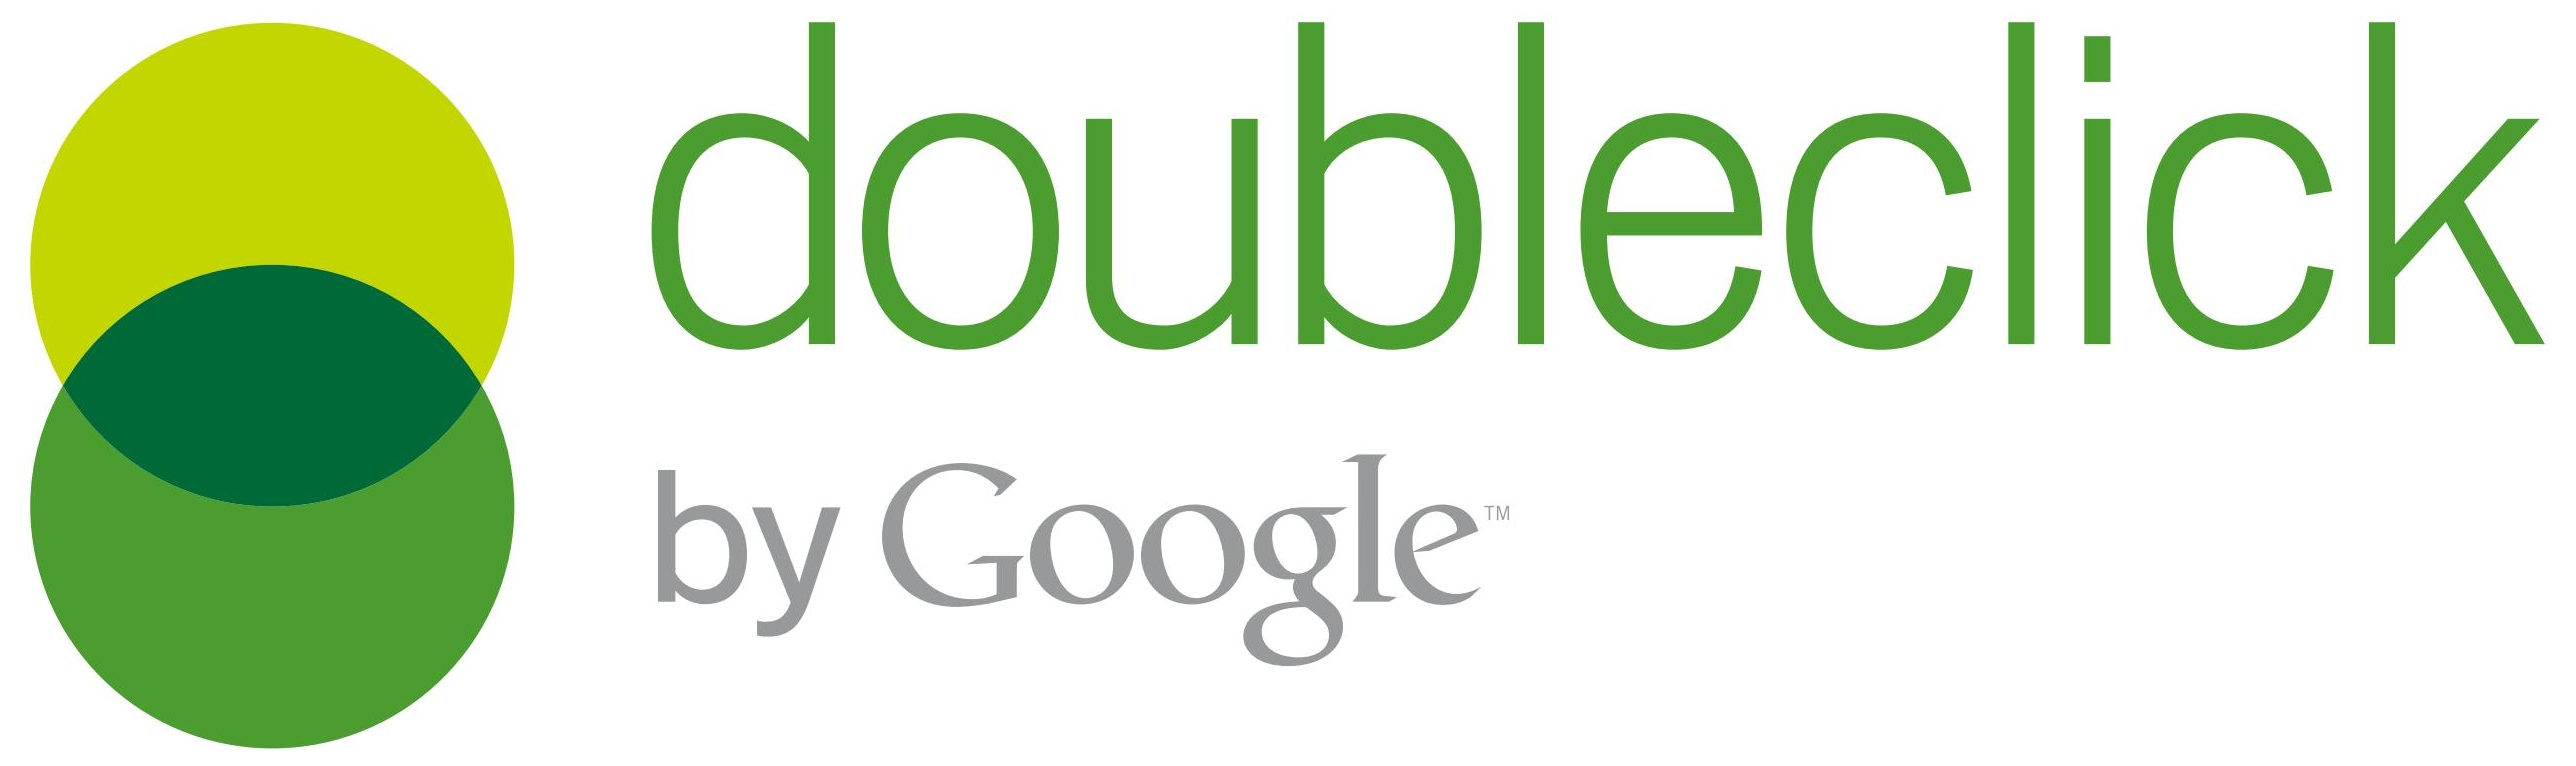 Doubleclick Search by Google Logo photo - 1